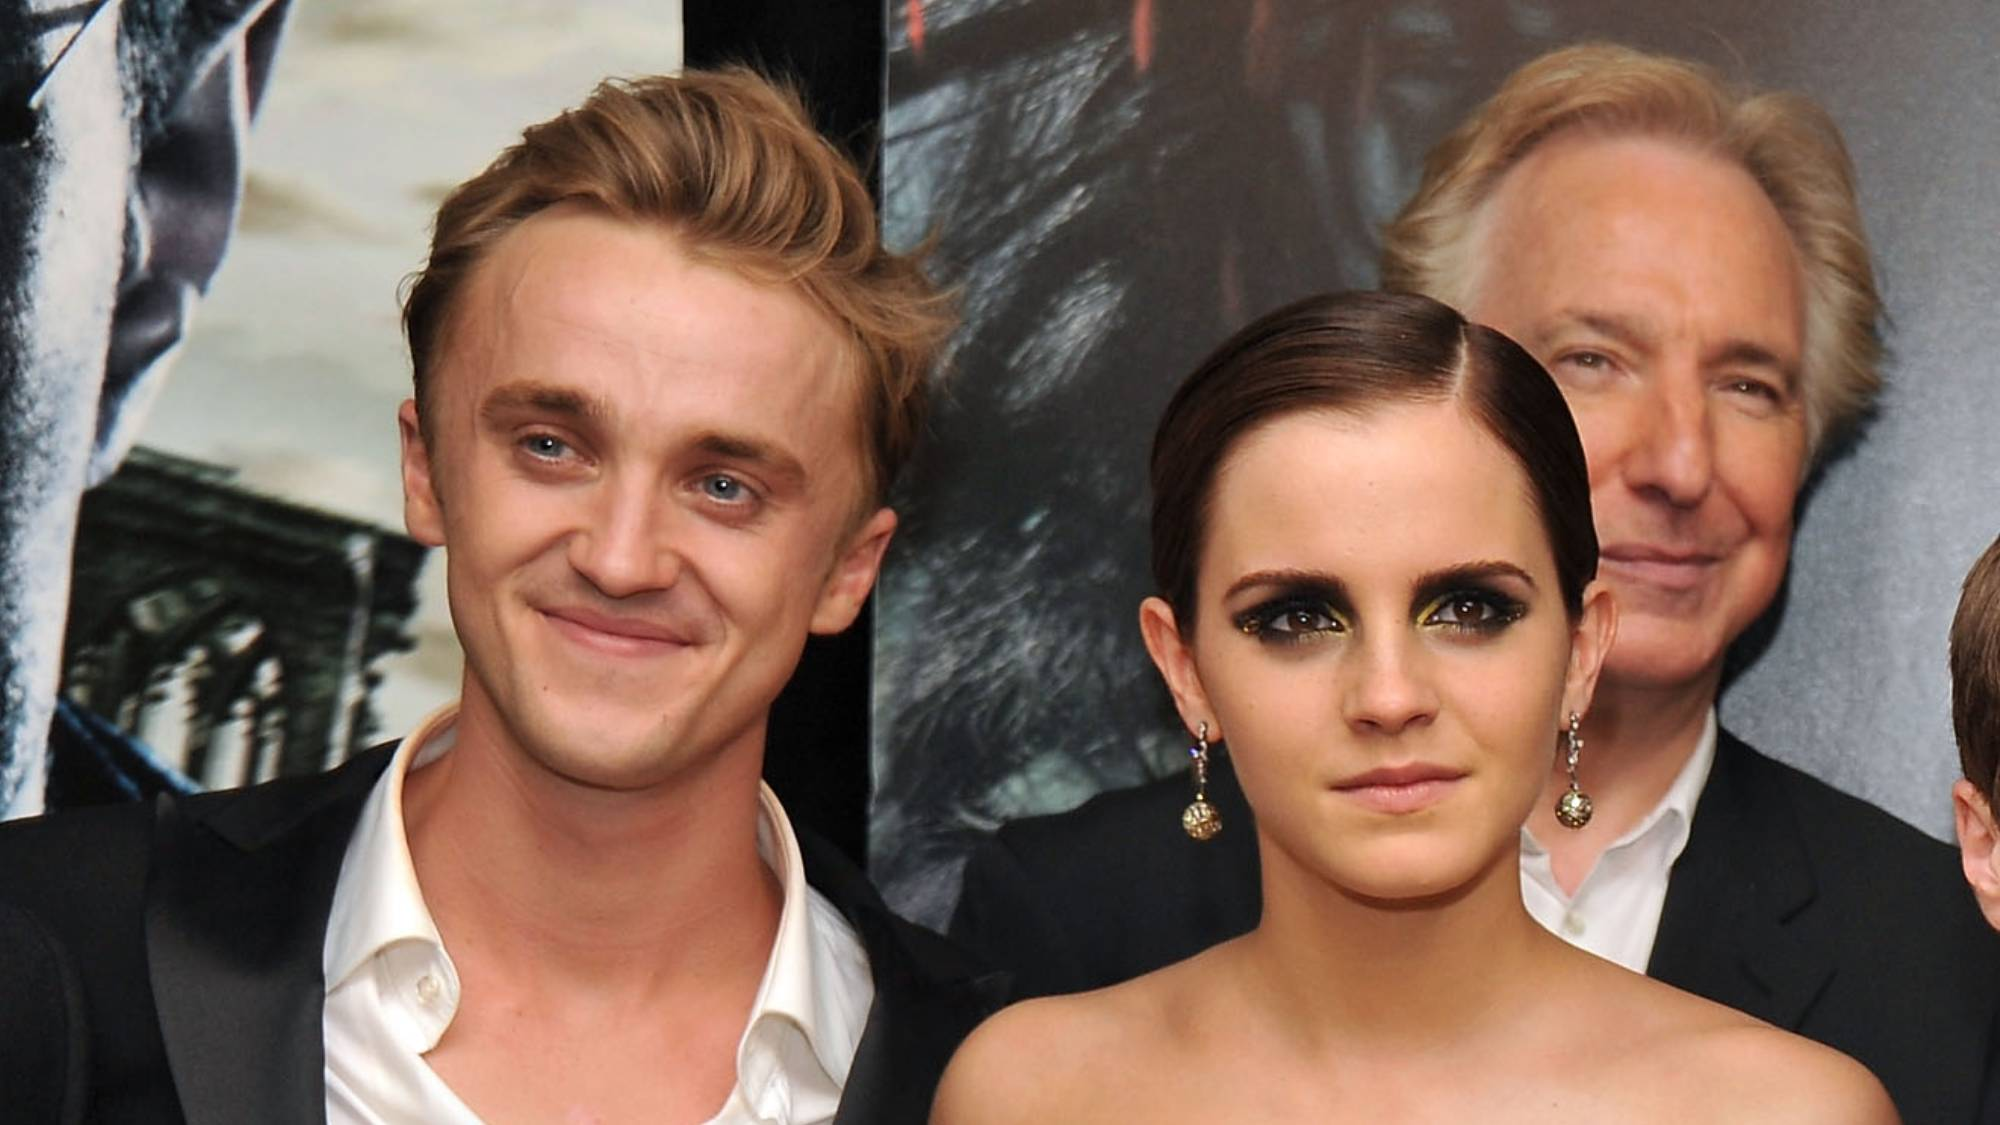 Rupert Grint says that Emma Watson and Tom Felton had a 'spark' during their Harry Potter days